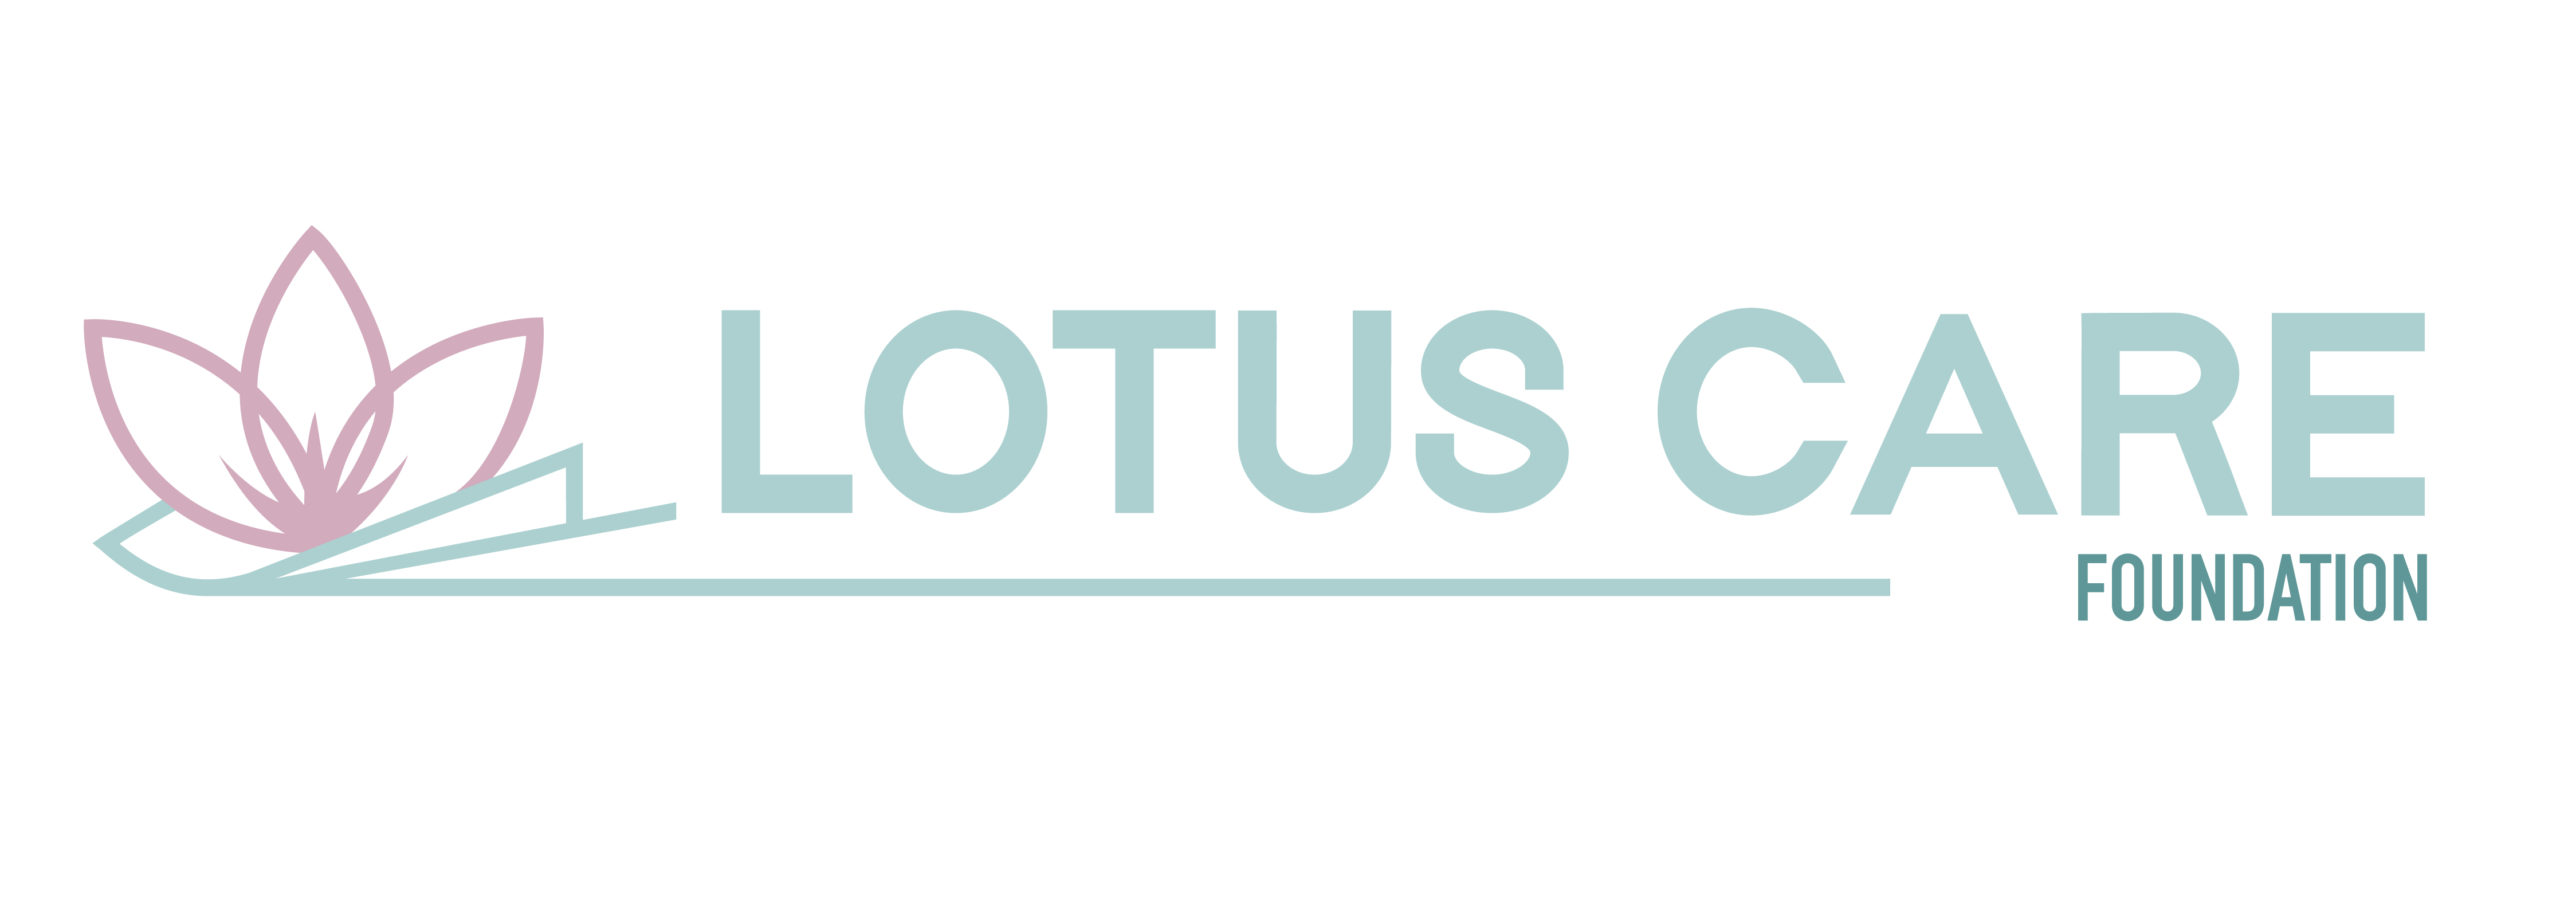 Lotus Care Foundation